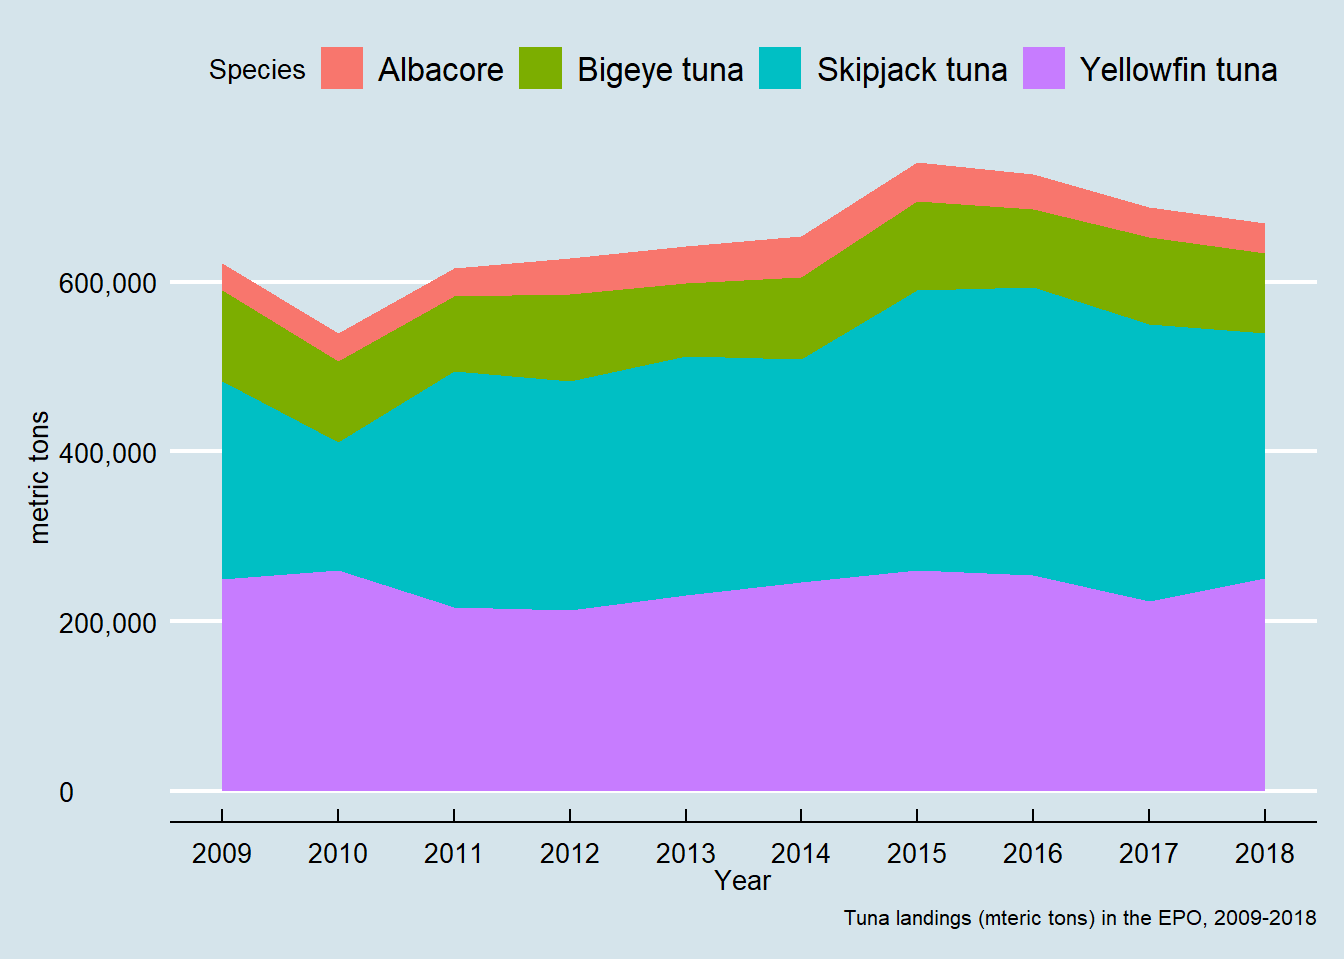 Annual landings of albacore, bigeye, skipjack, and yellowfin tunas in metric tons, 2009-2018.